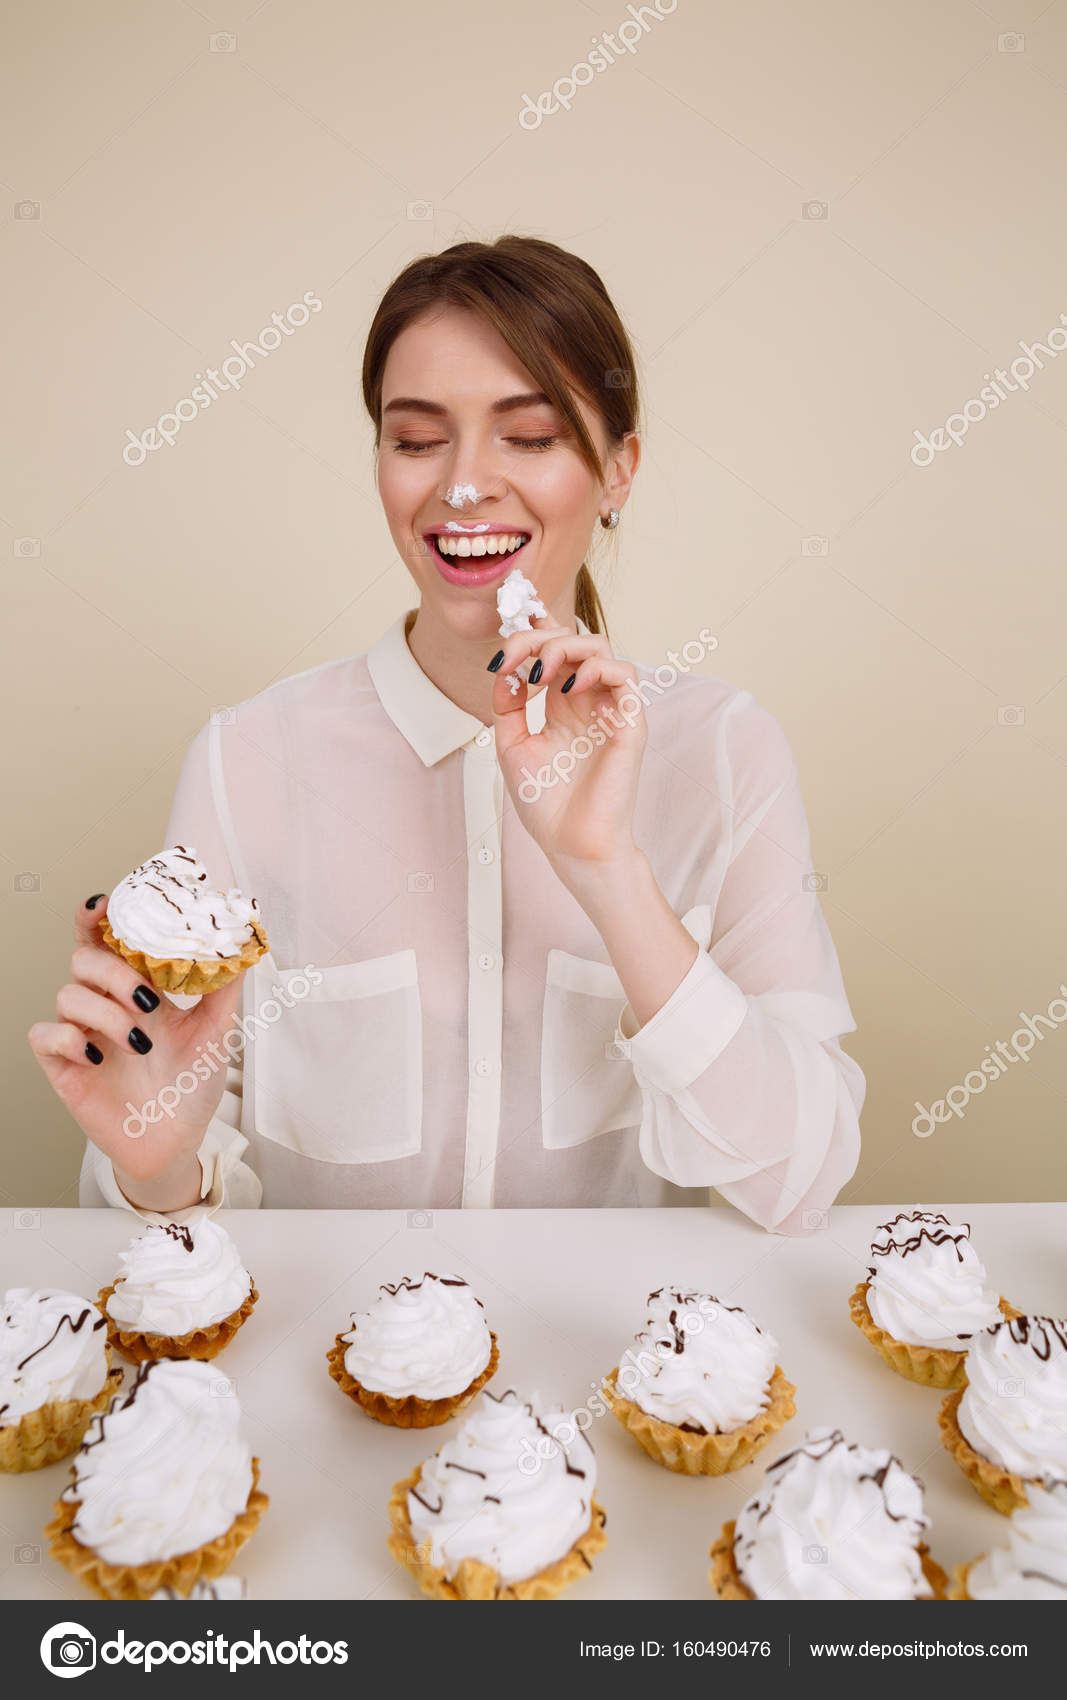 happy woman eating cupcakes at the table and having fun stock photo 160490476 - Woman Decorating Cupcakes